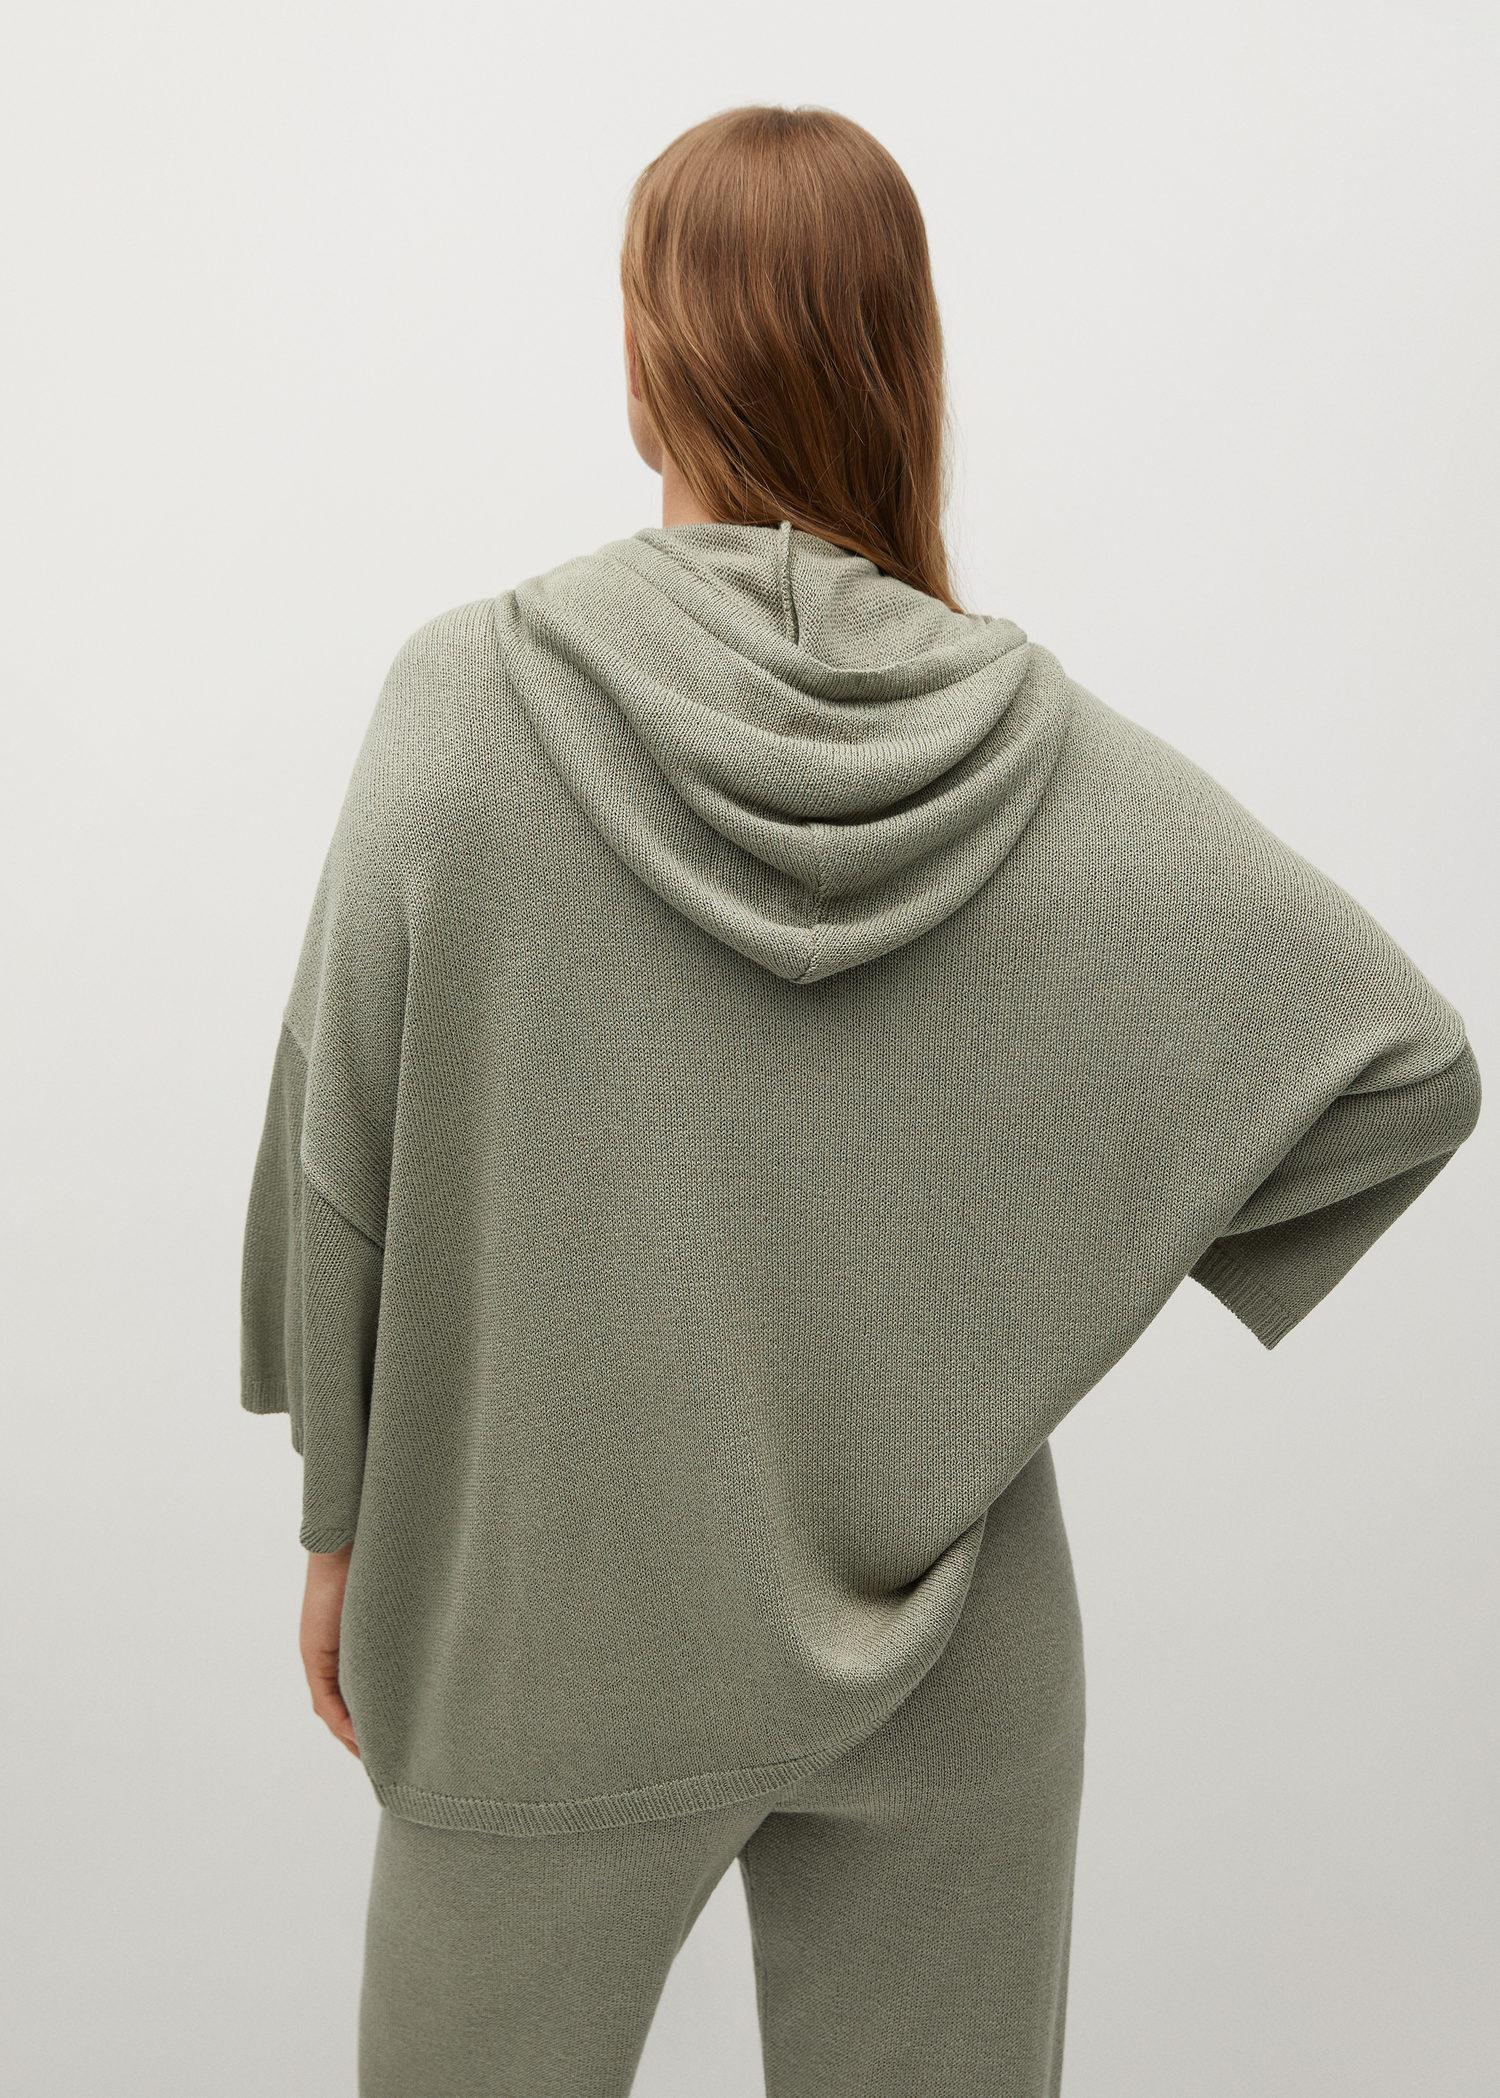 Oversized hooded sweater 2